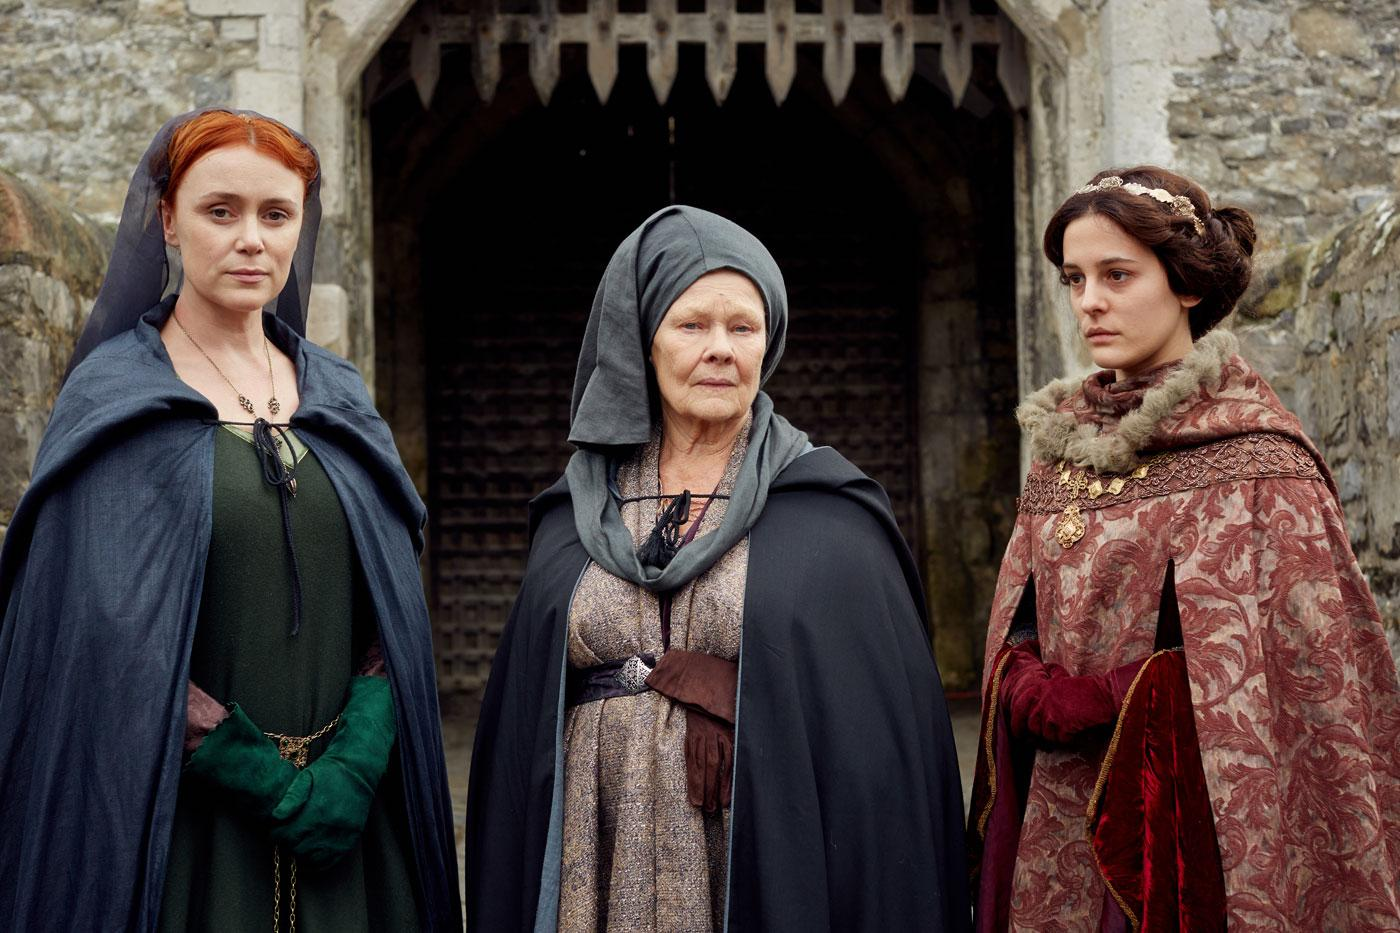 Keeley Hawes, Judi Dench, and Phoebe Fox in 'The Hollow Crown.' Photo: Robert Viglasky © 2015 Carnival Film & Television Ltd